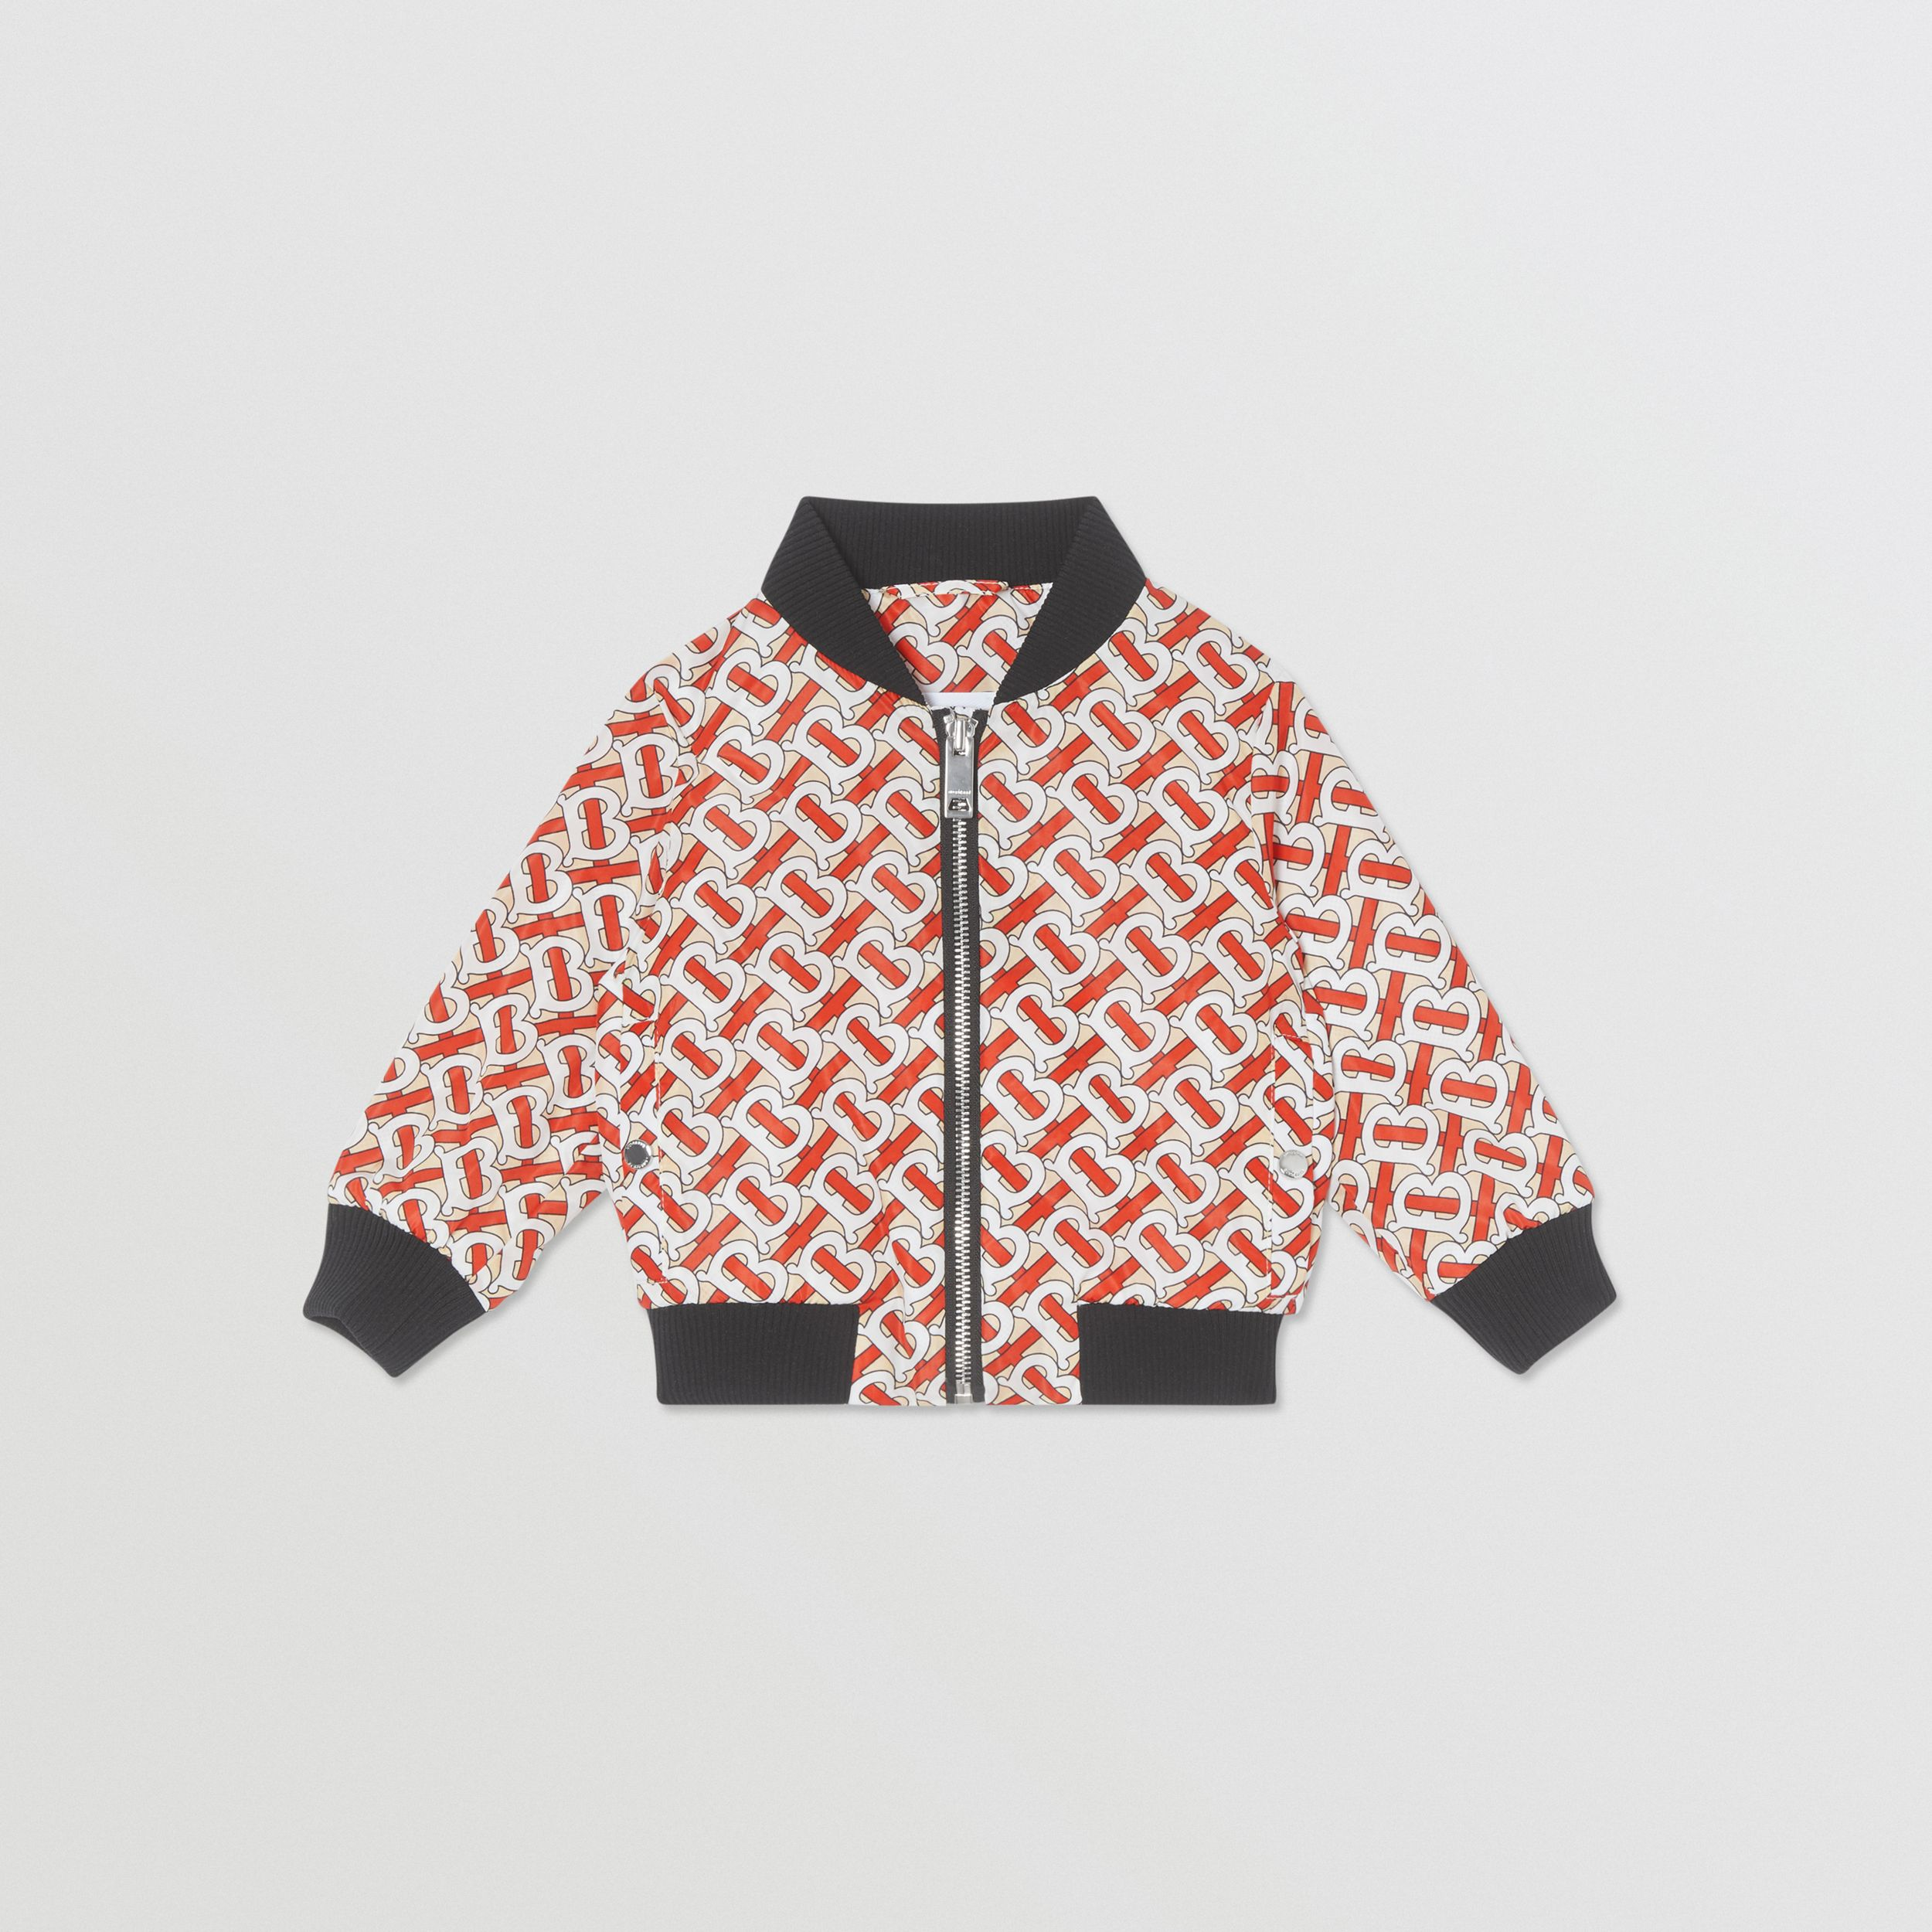 Monogram Print Nylon Bomber Jacket in Vermilion Red - Children | Burberry - 1